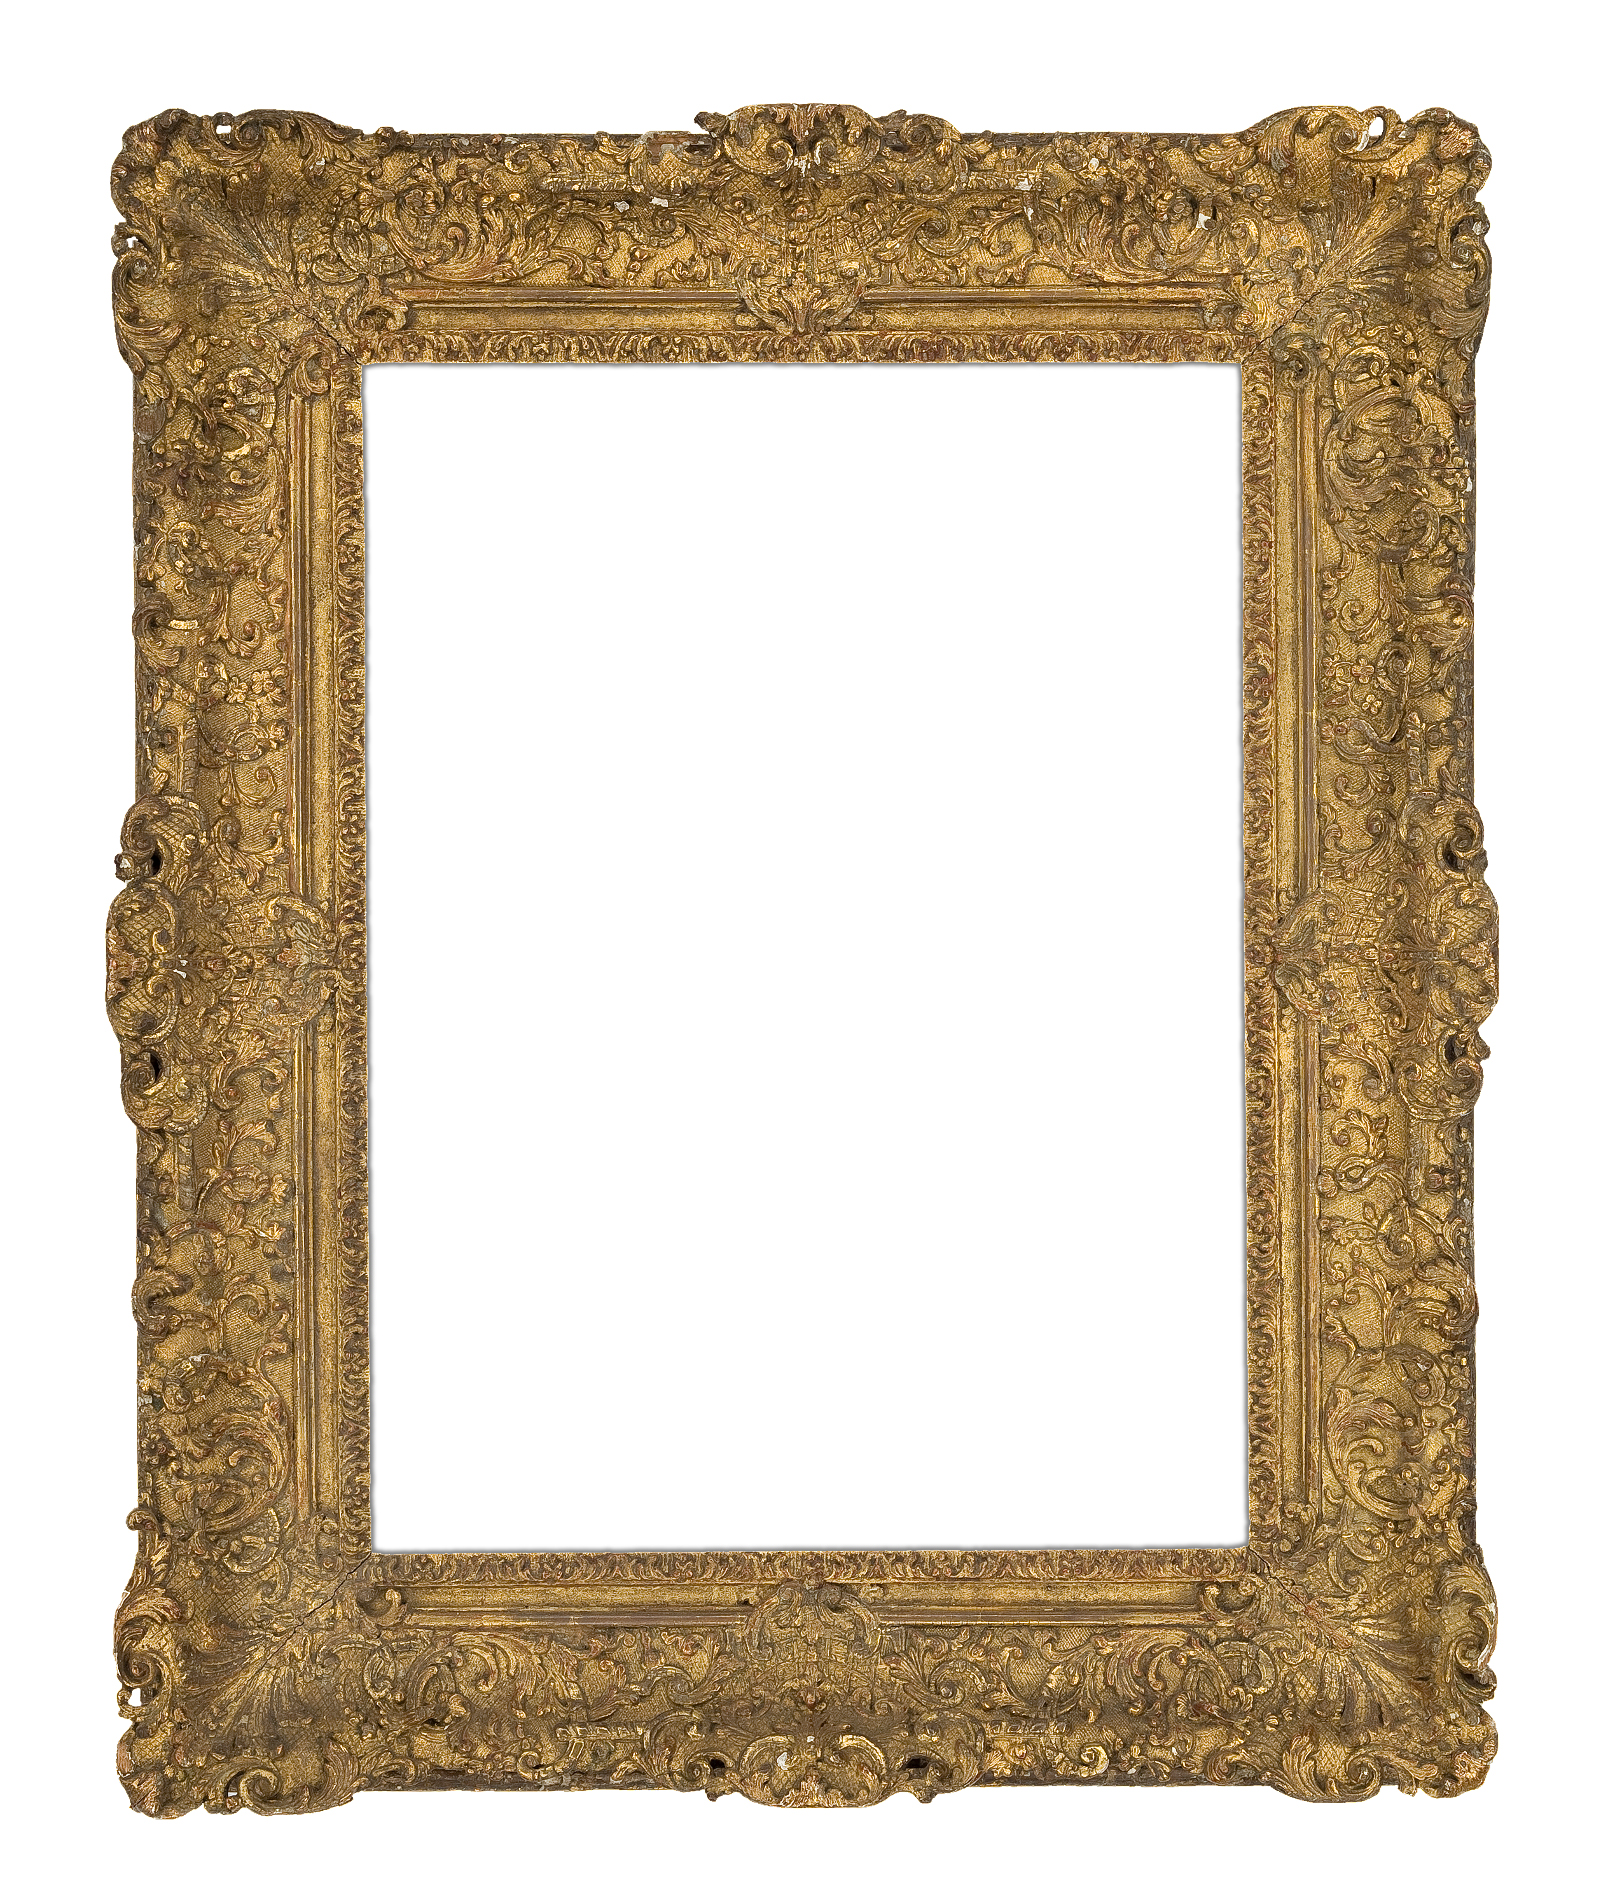 Pairing Frames with 19th Century Art